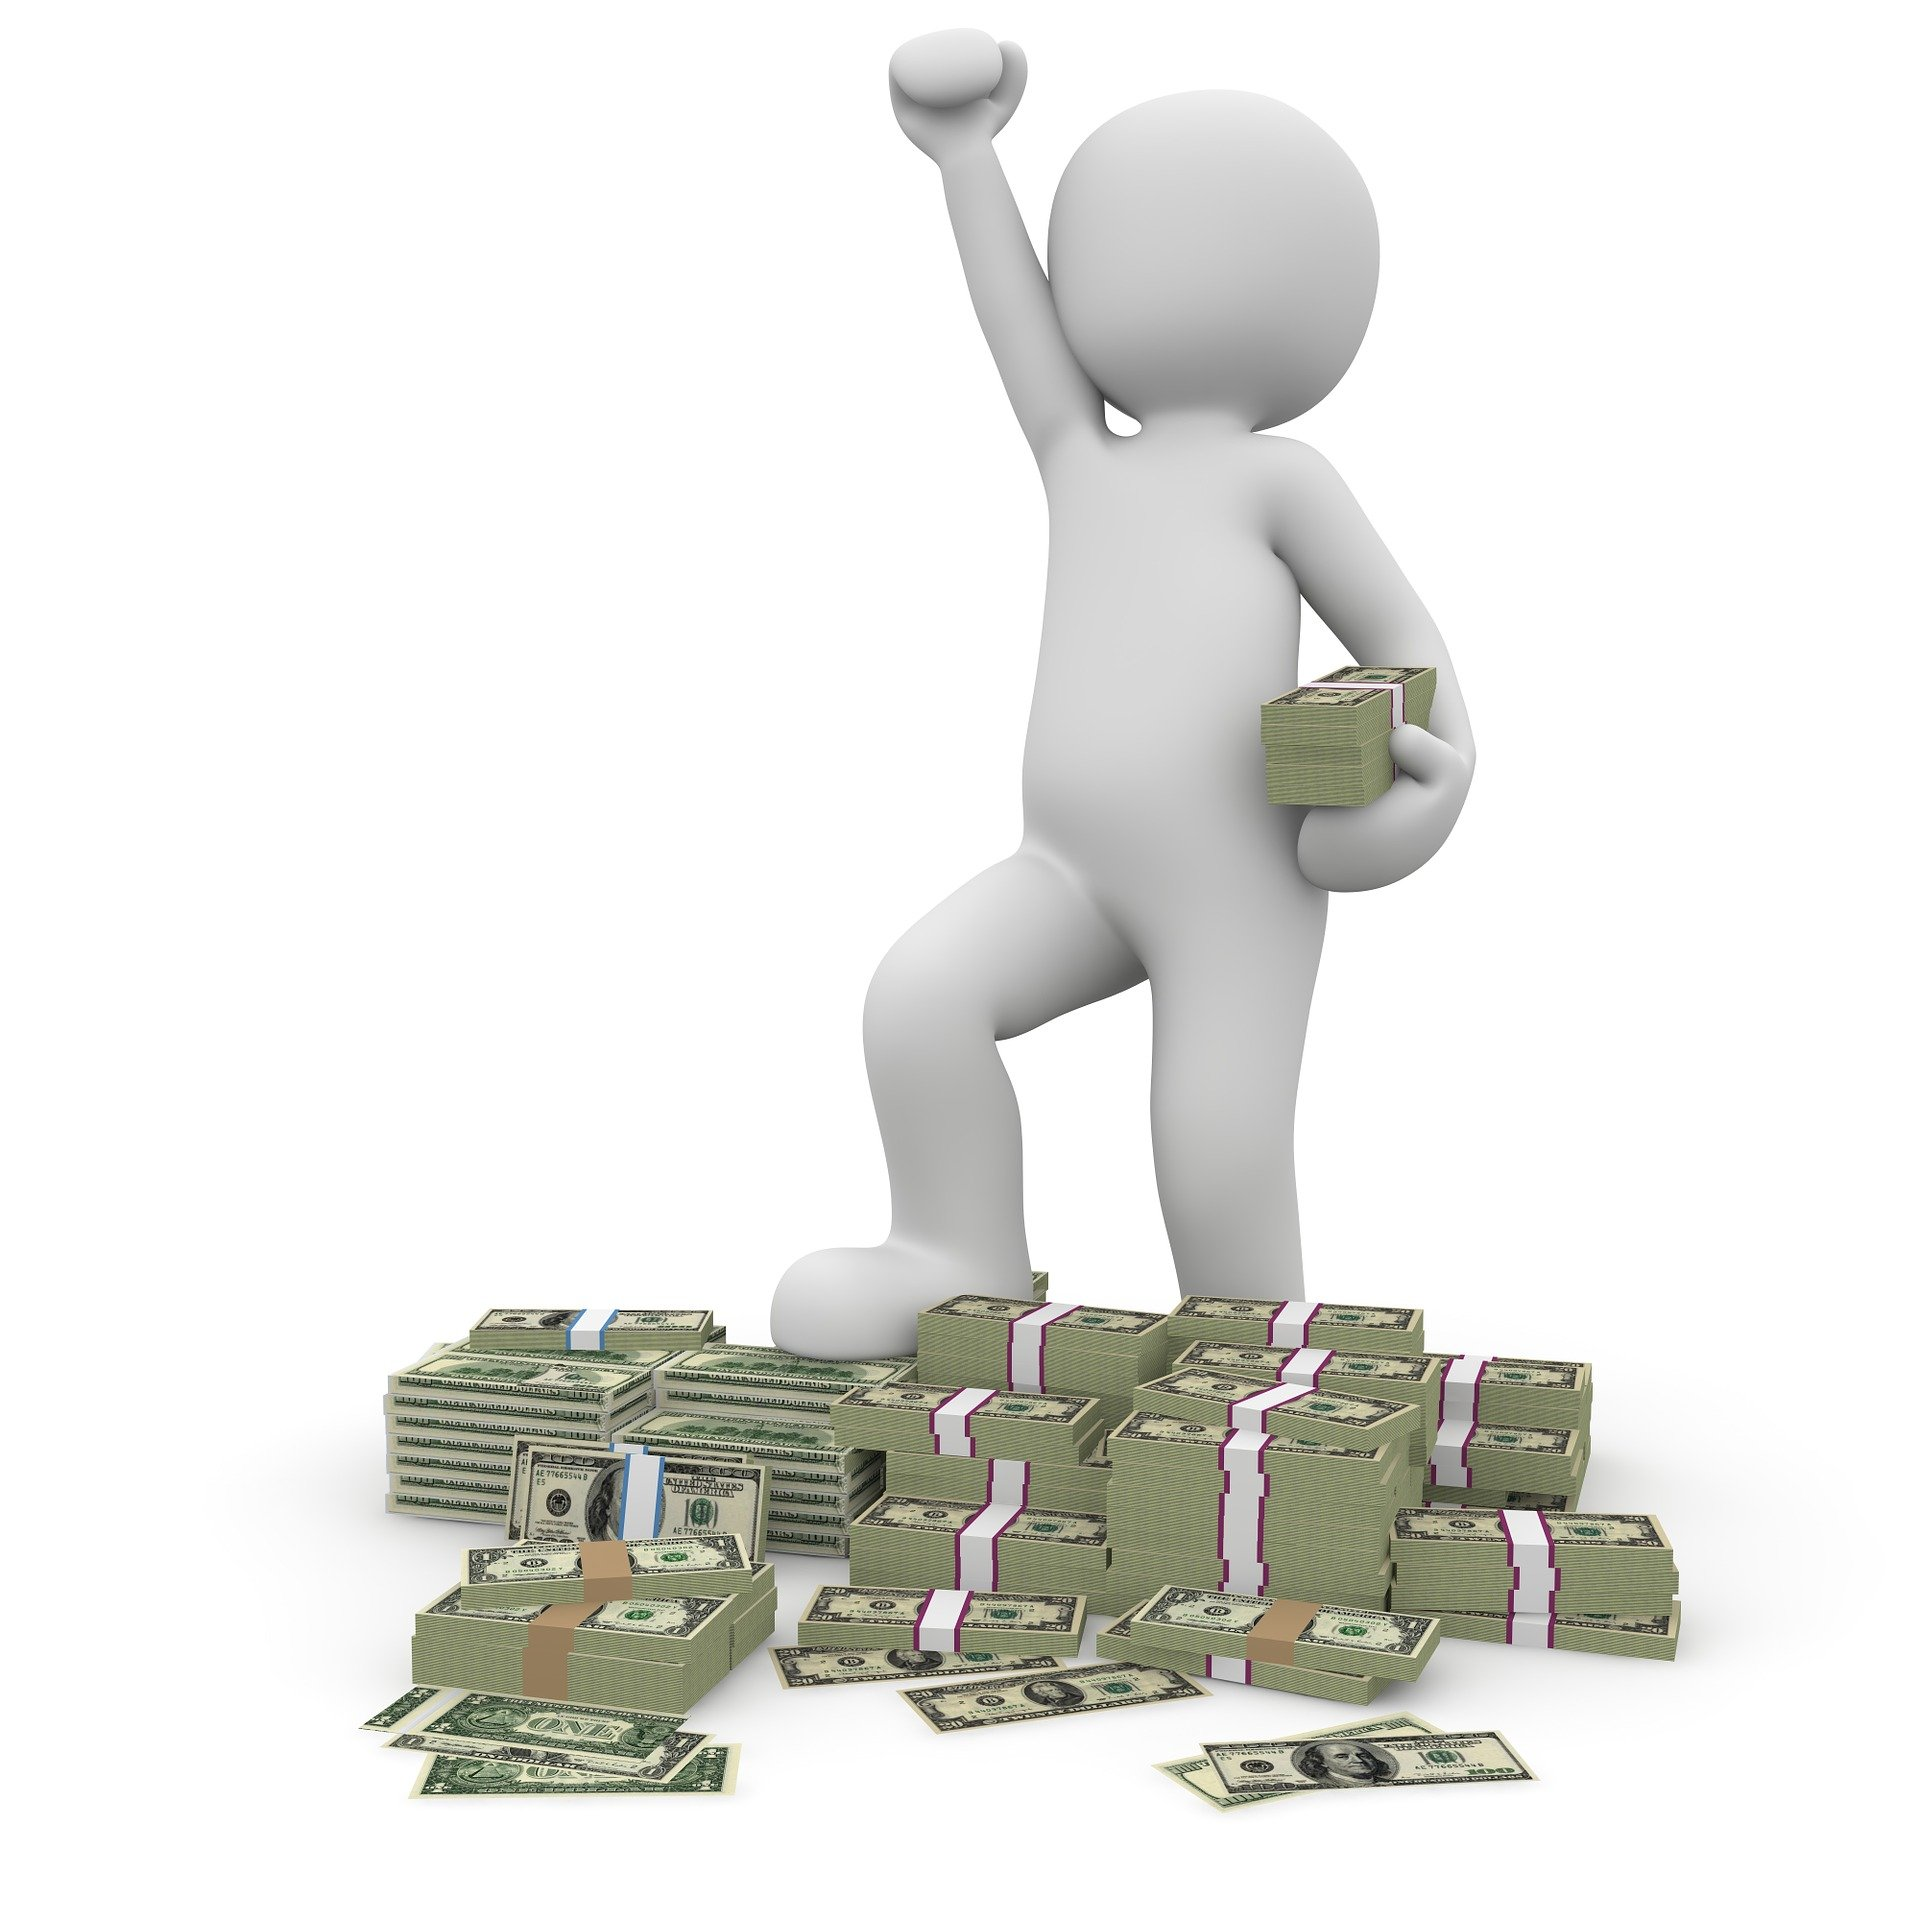 A person cheering with money.